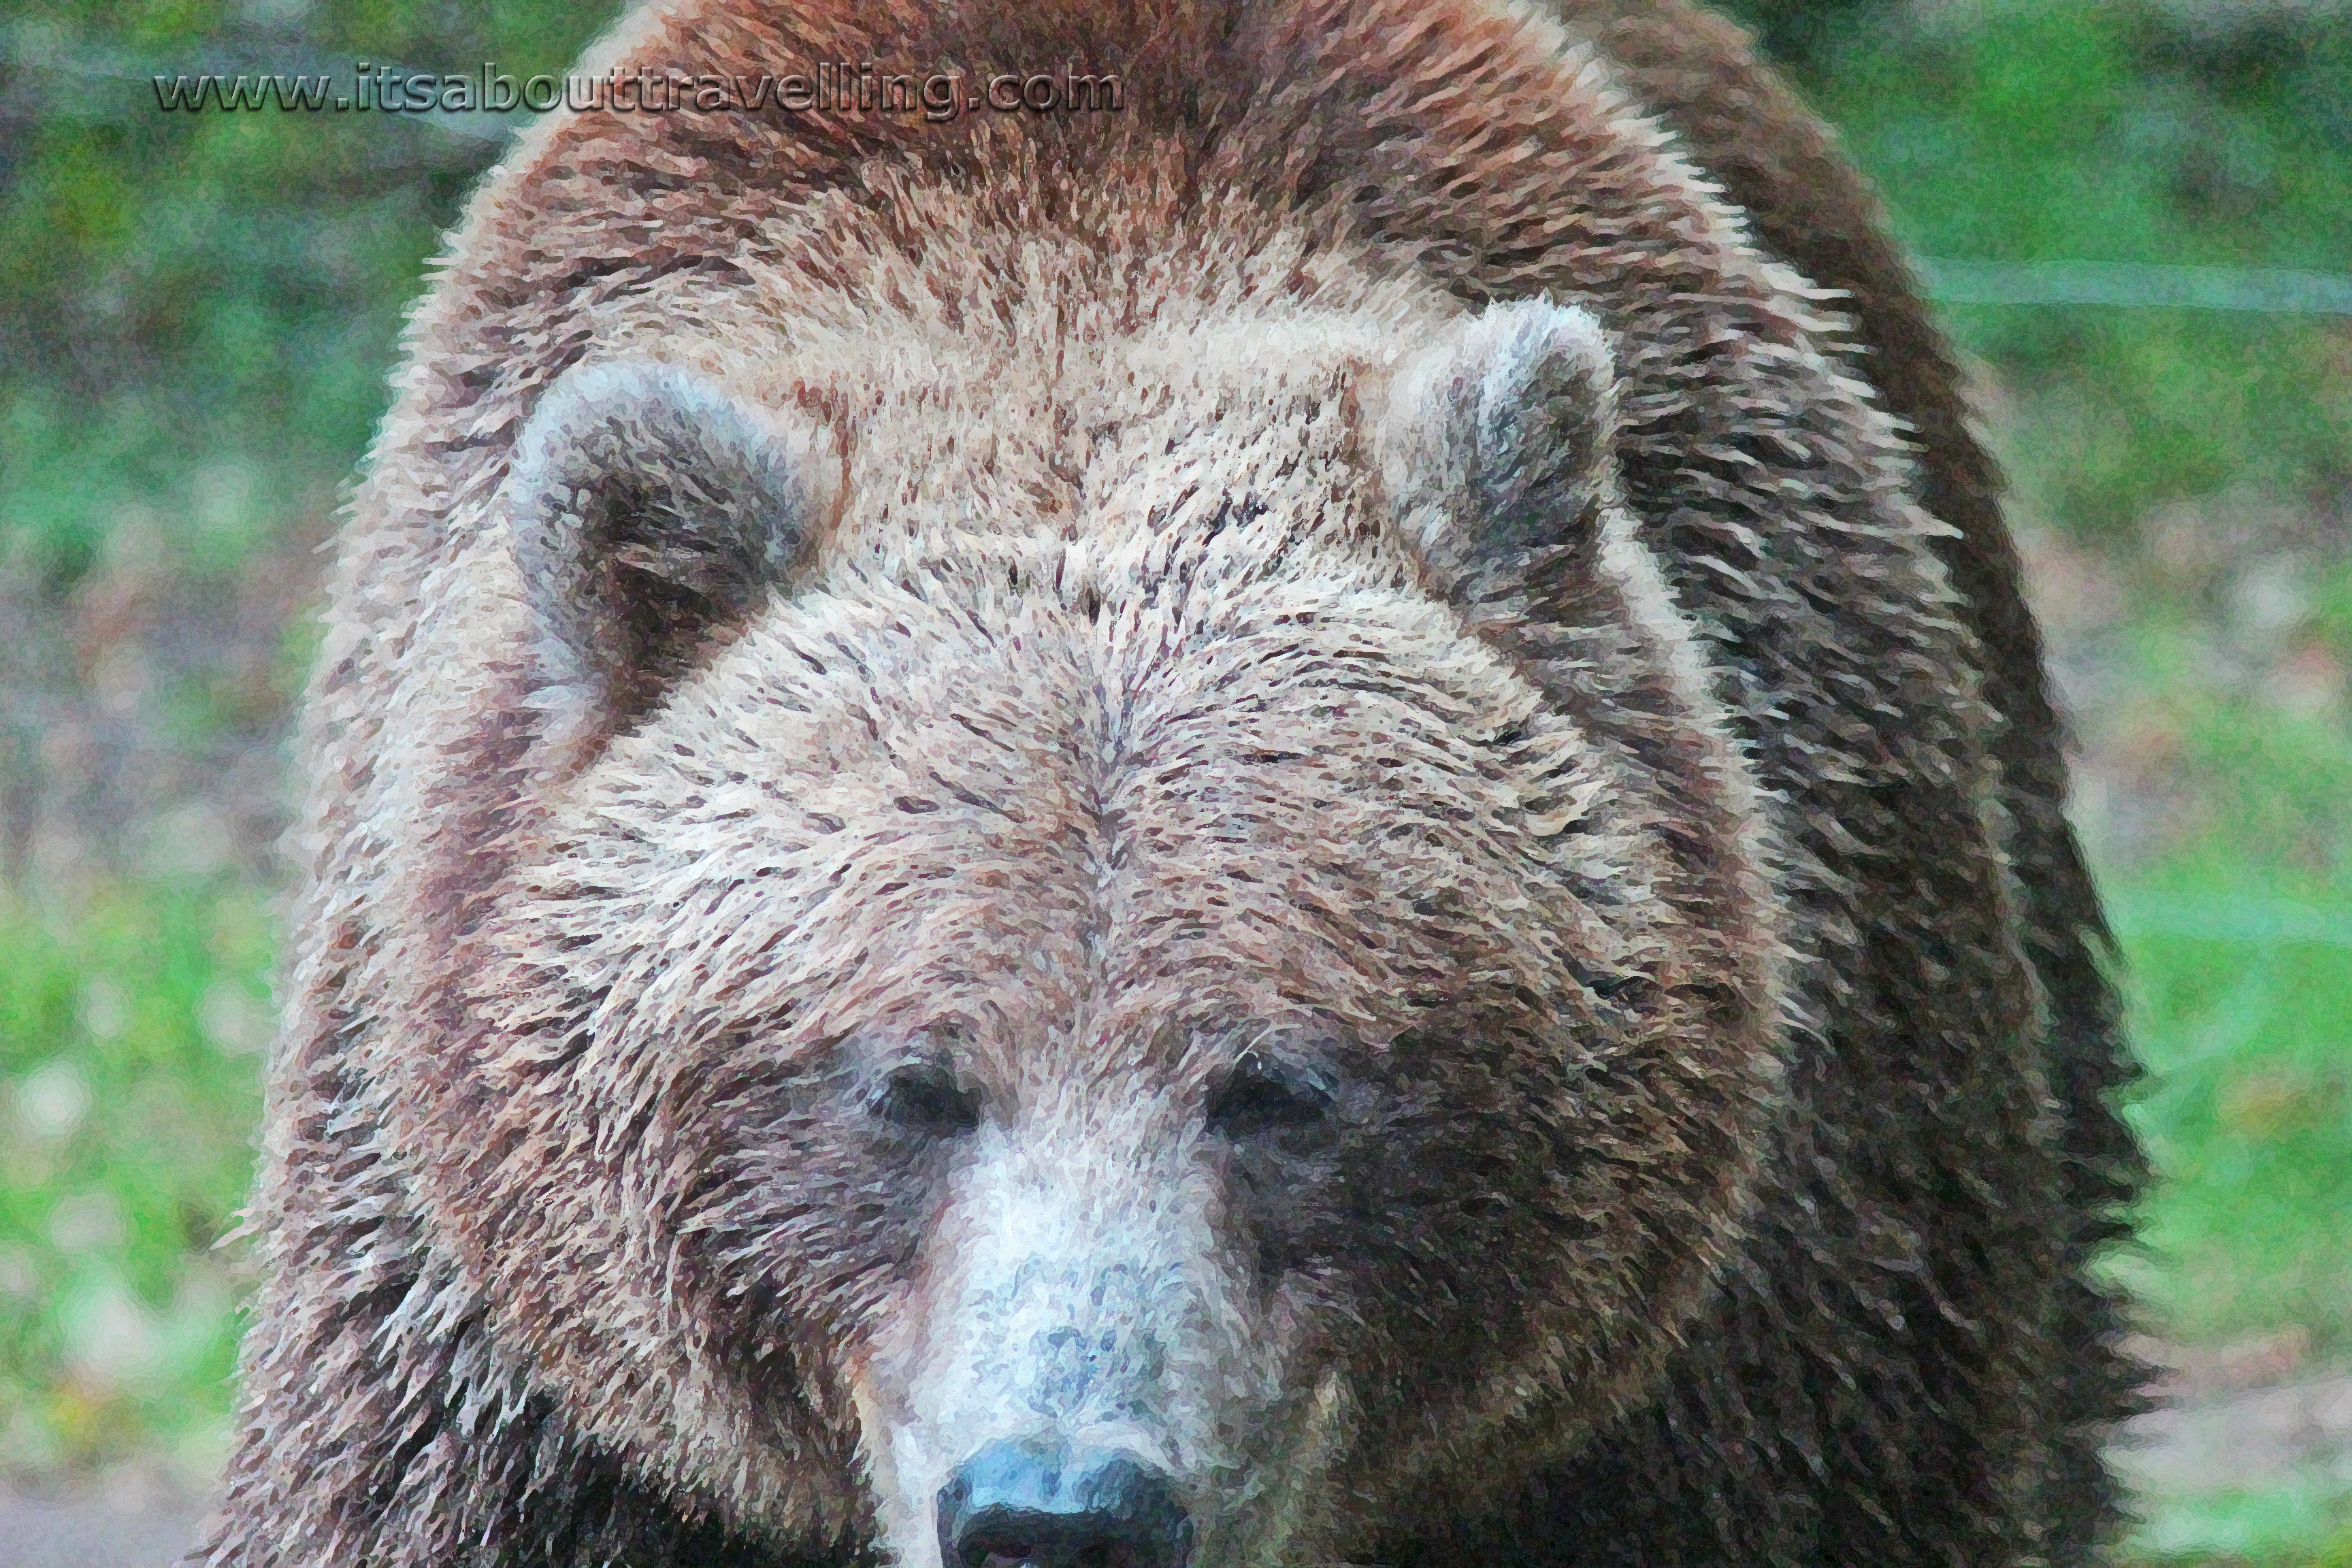 Grizzly bear at the toronto zoo pic of the day